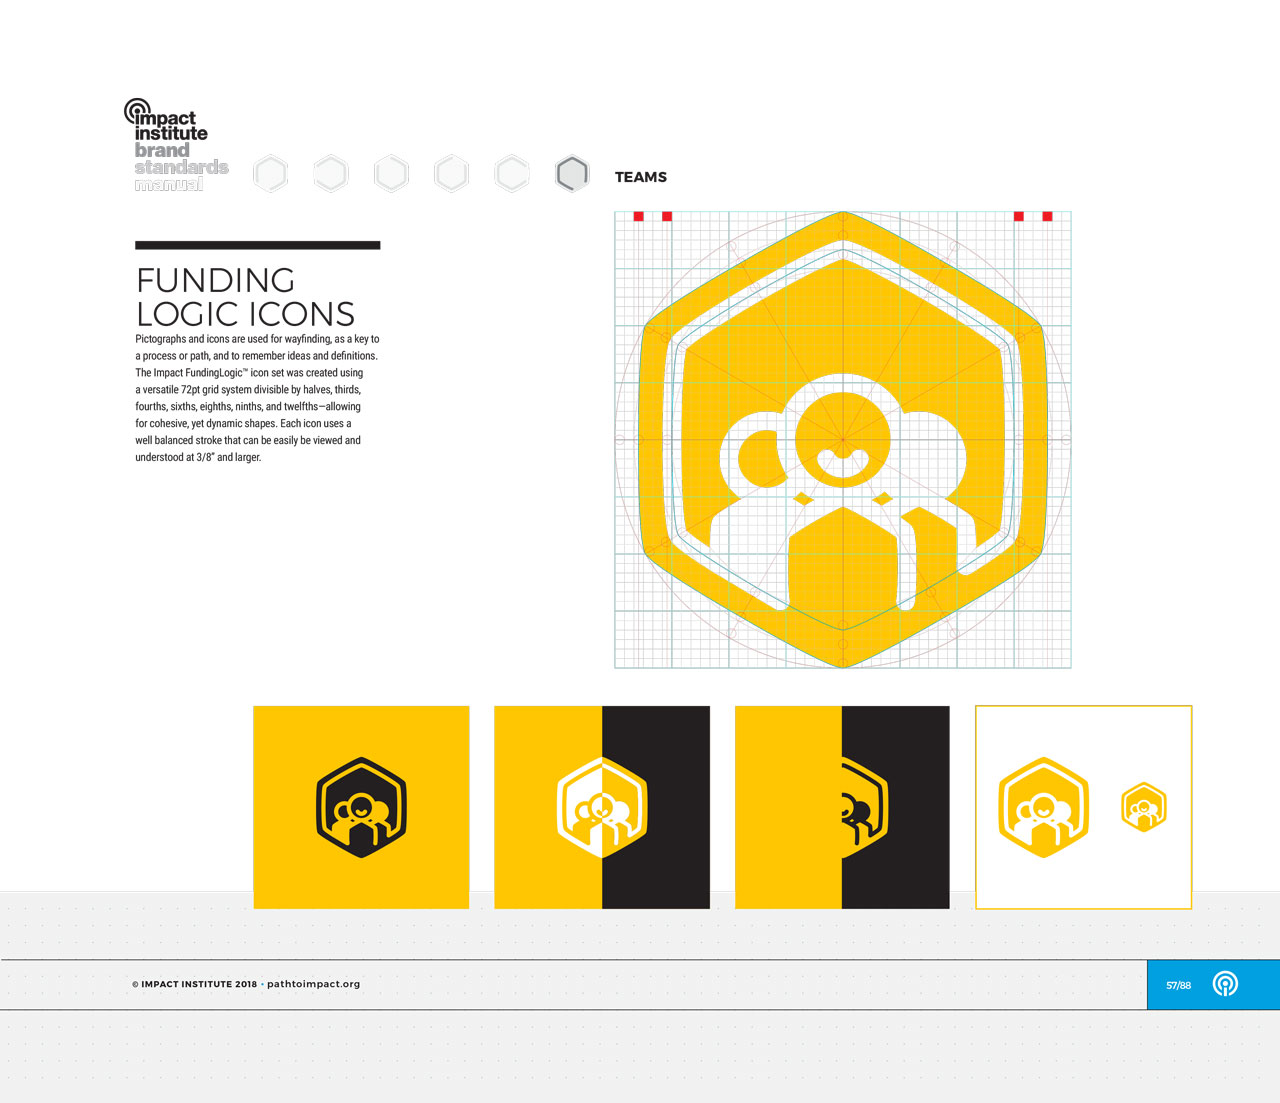 Single page from brand identity manual displaying yellow, hexagonal team icon